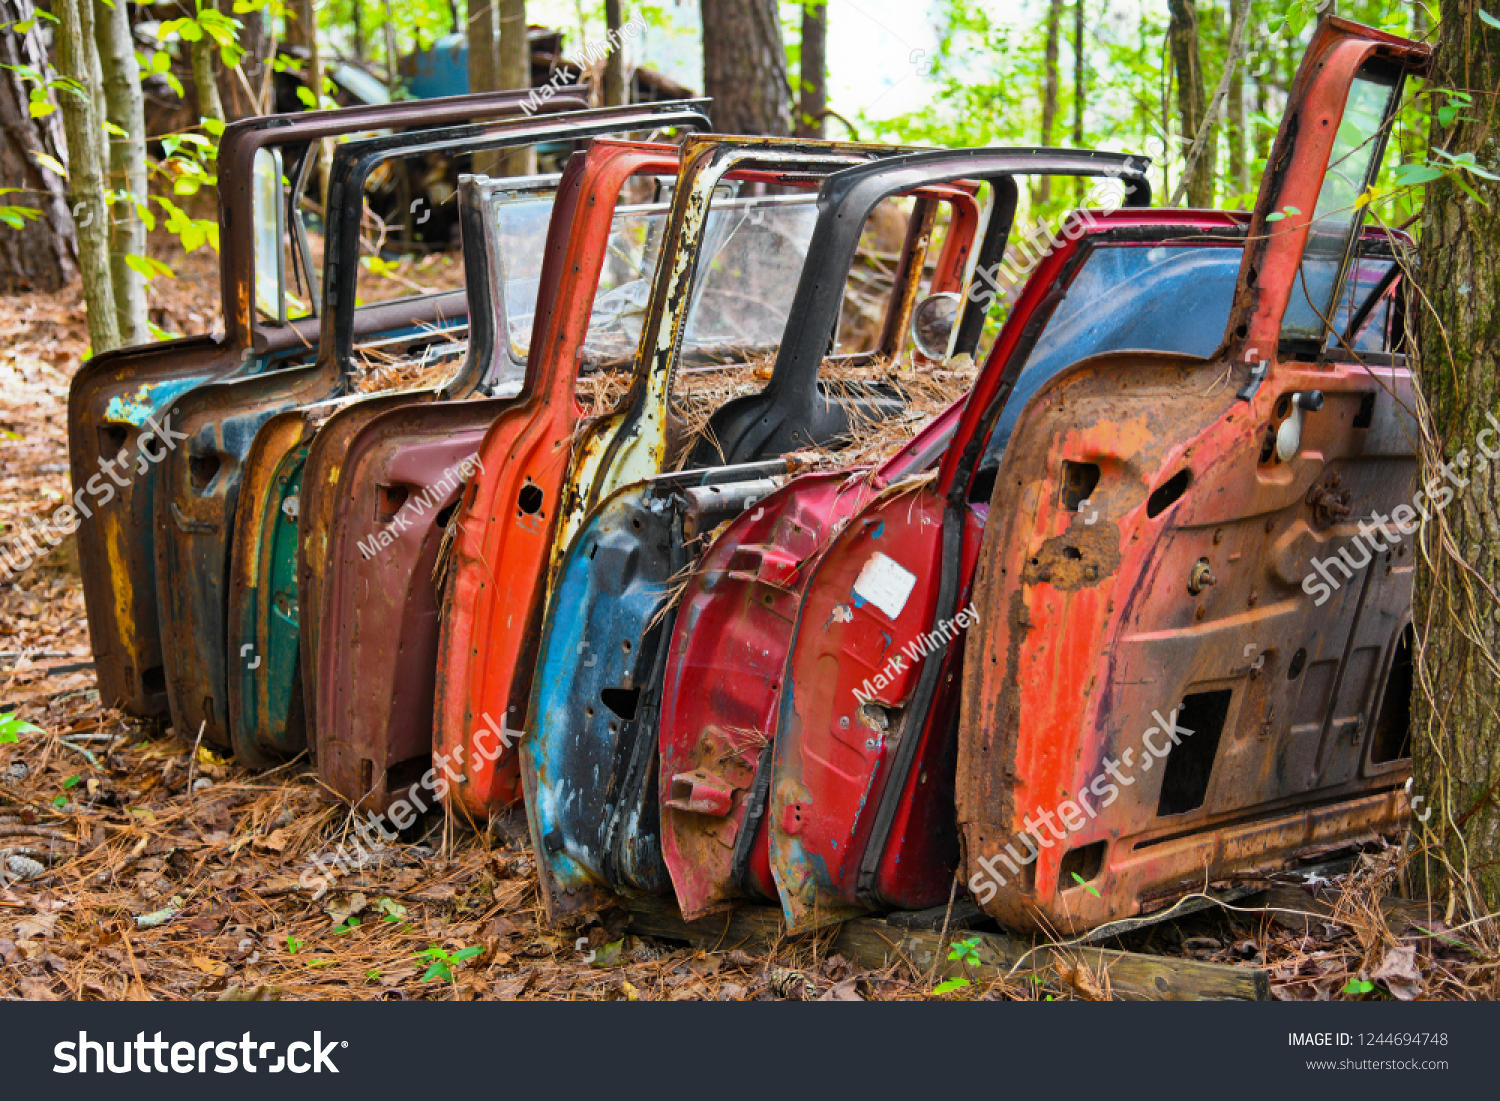 stock-photo-a-row-of-old-doors-off-scrap